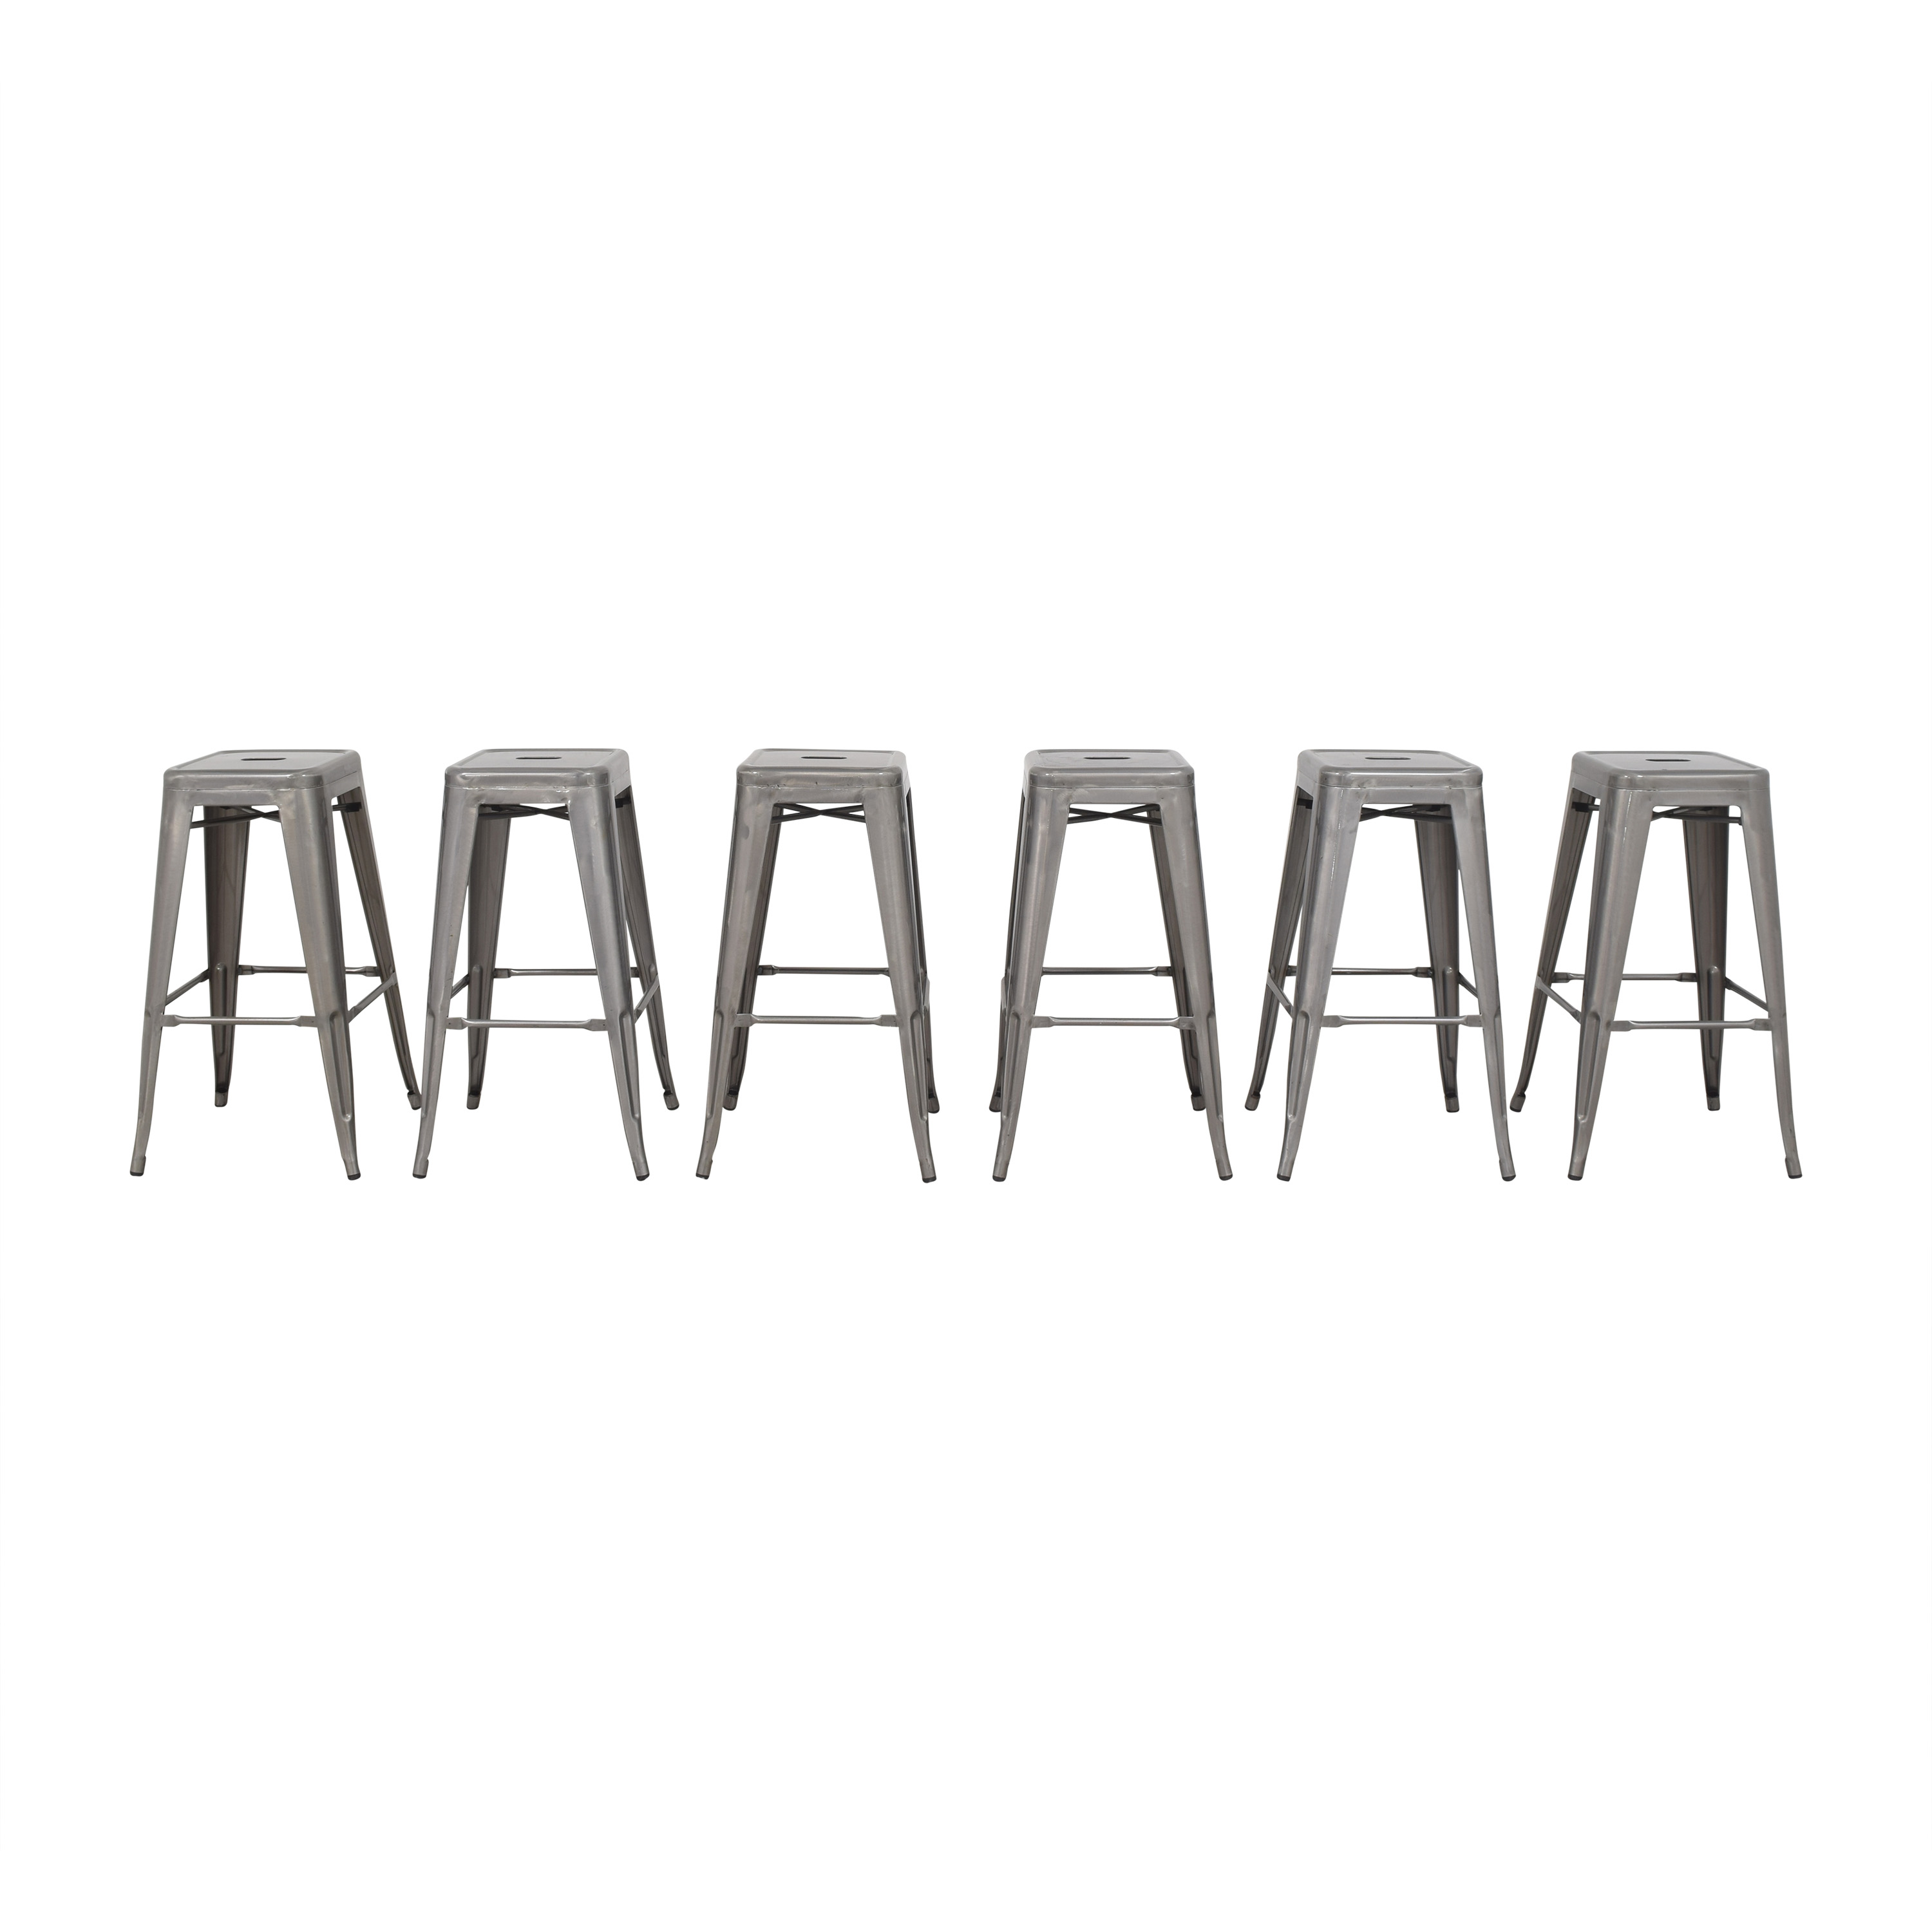 Adeco Trading Adeco Trading Modern Bar Stools dimensions